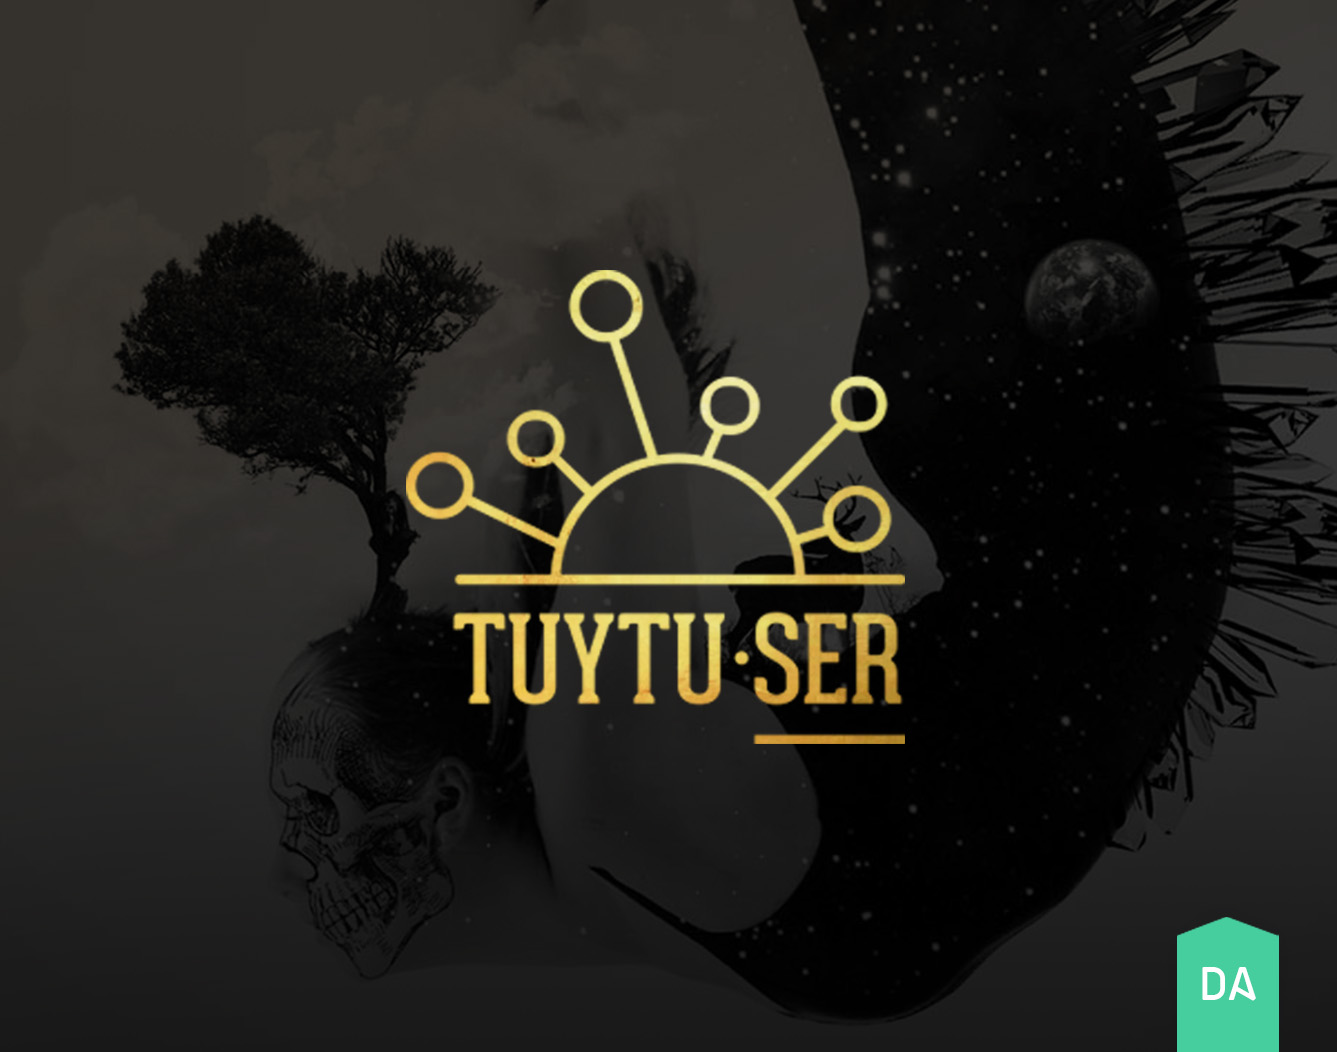 Digital Art | Tuytuser